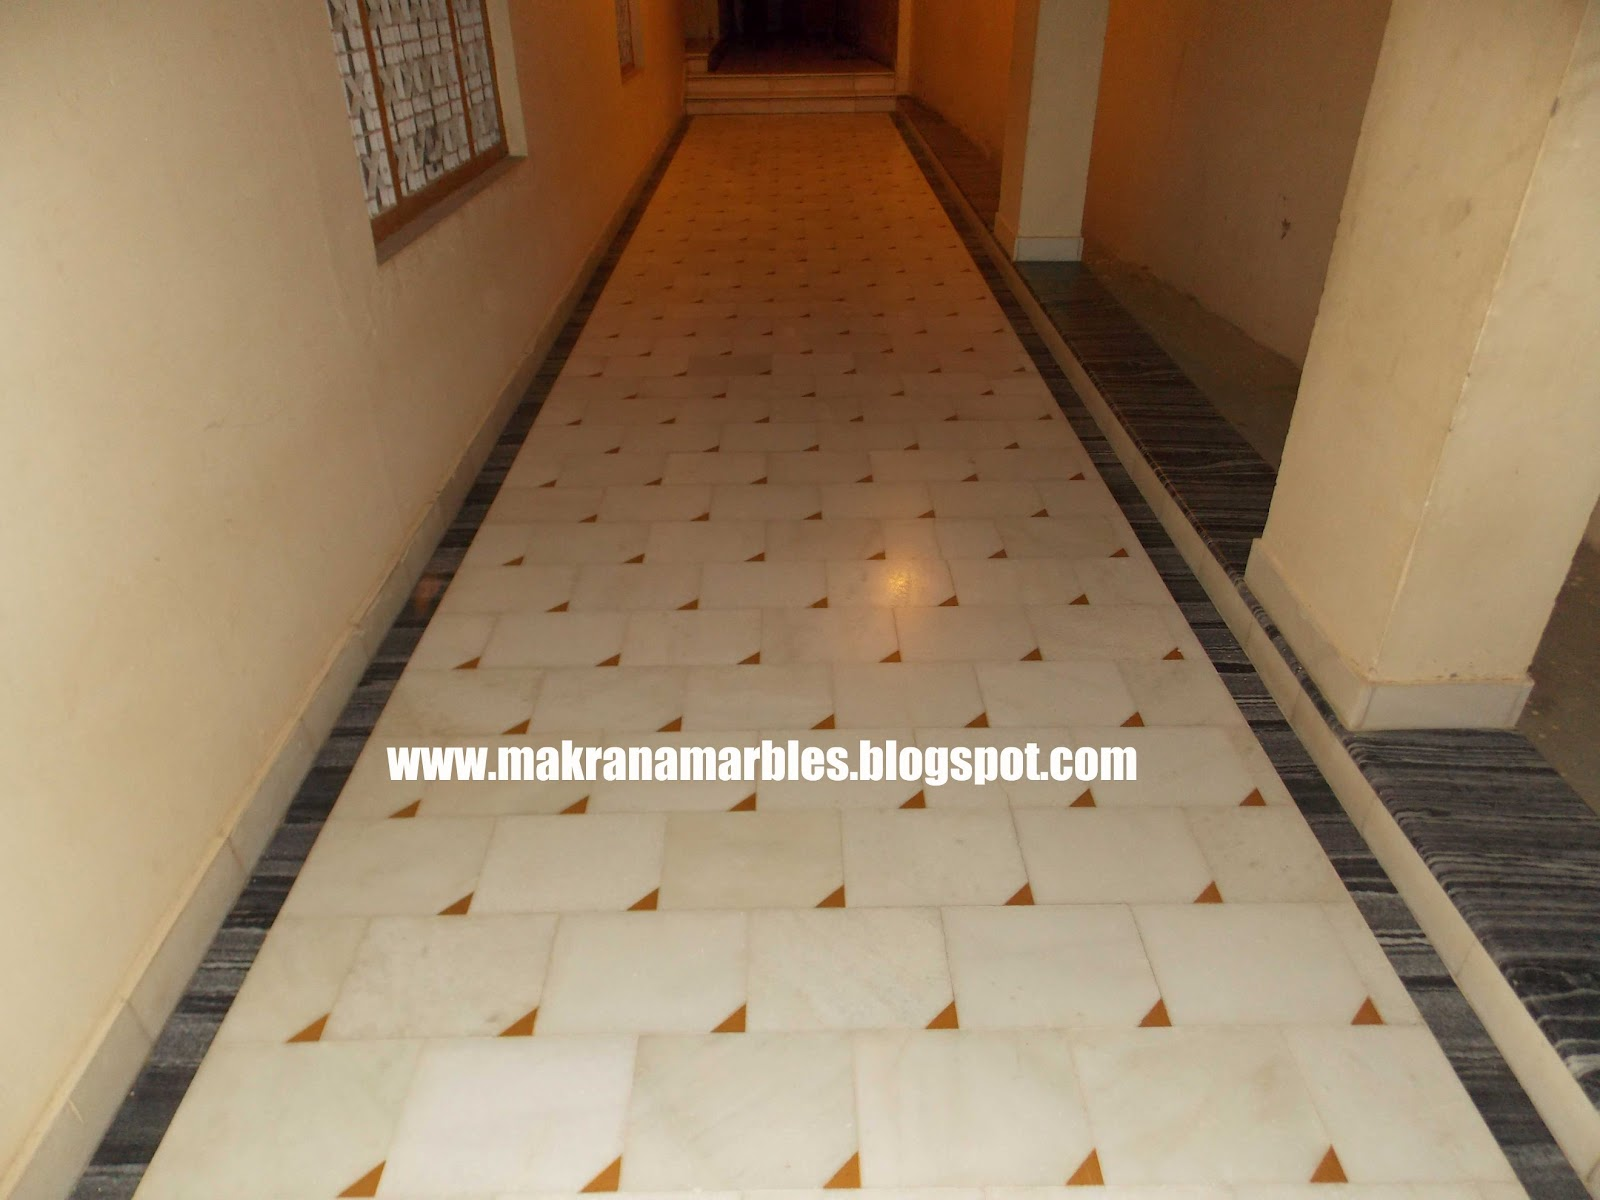 Makrana marble product and pricing details flooring pattern for Floor marble design